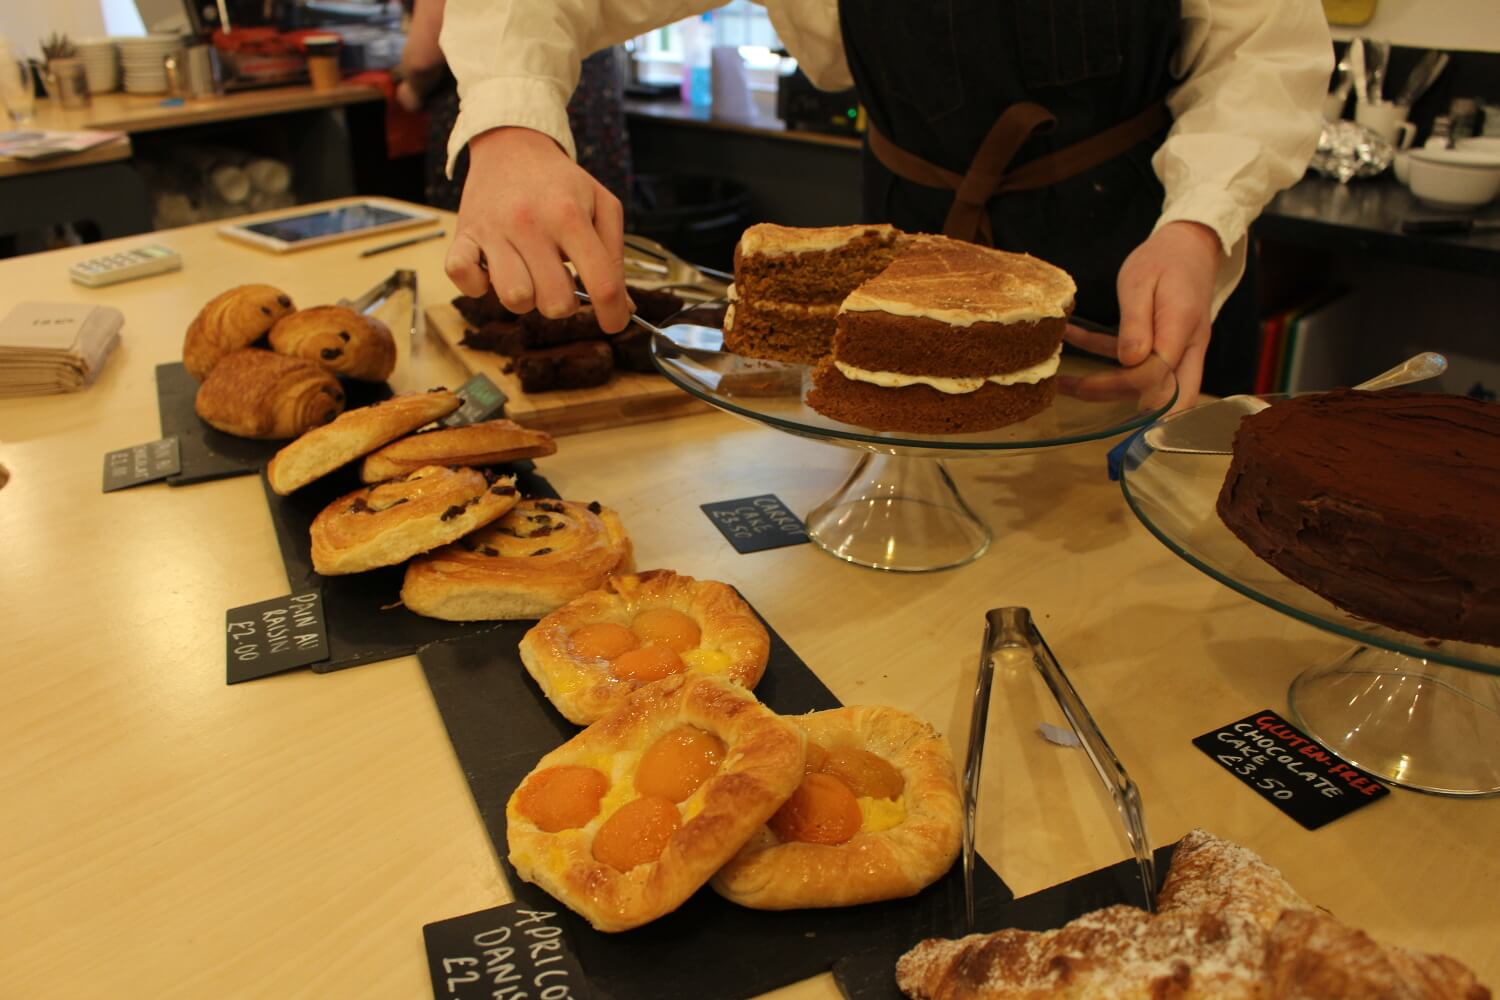 Cakes and pastries at the Nunnery Cafe